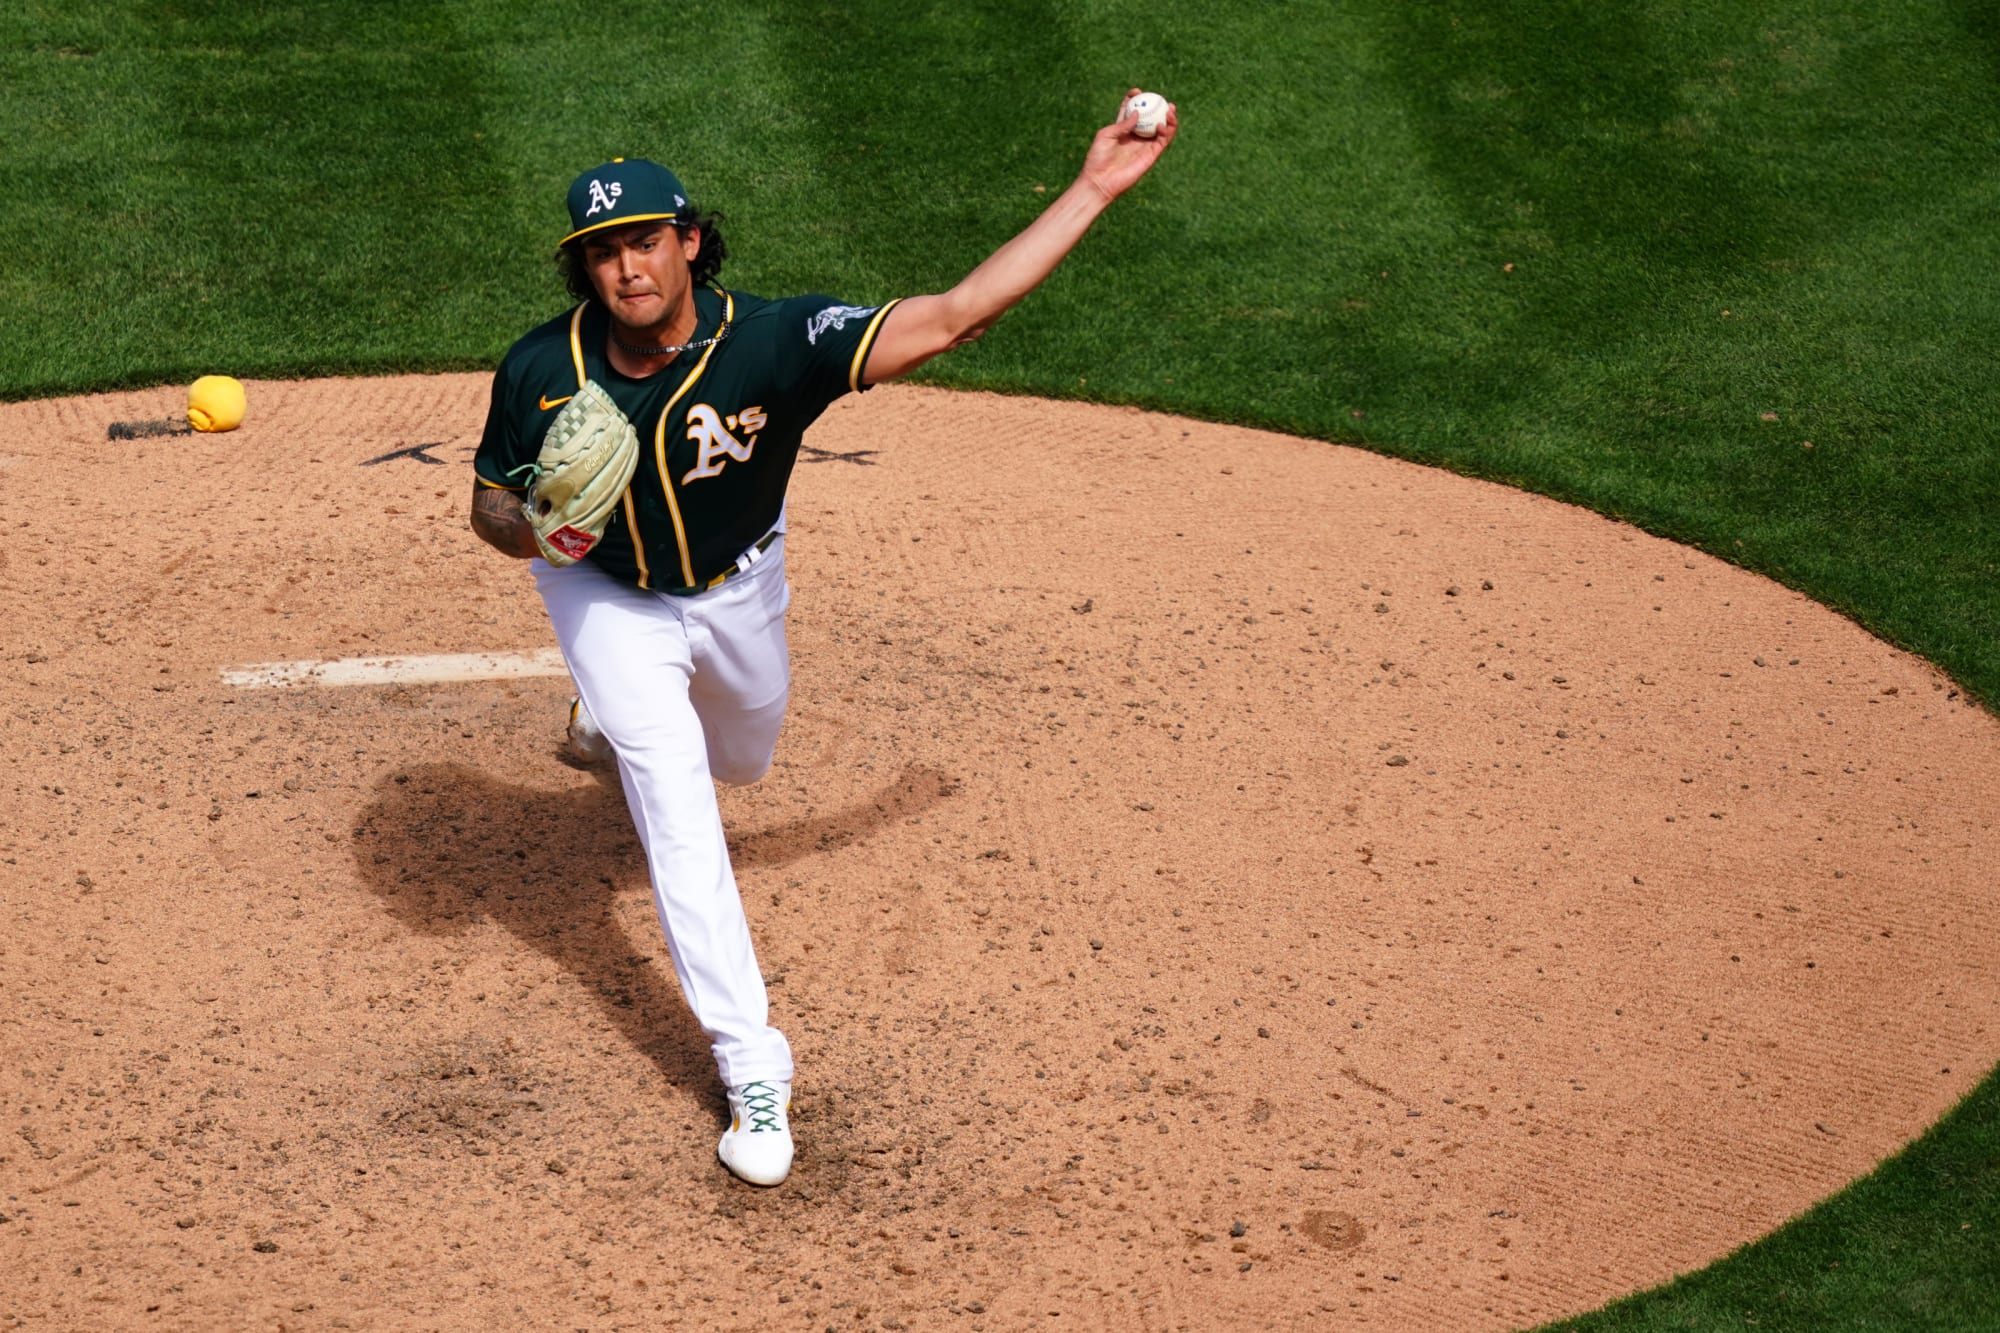 Oakland A's need Sean Manaea to provide quality start